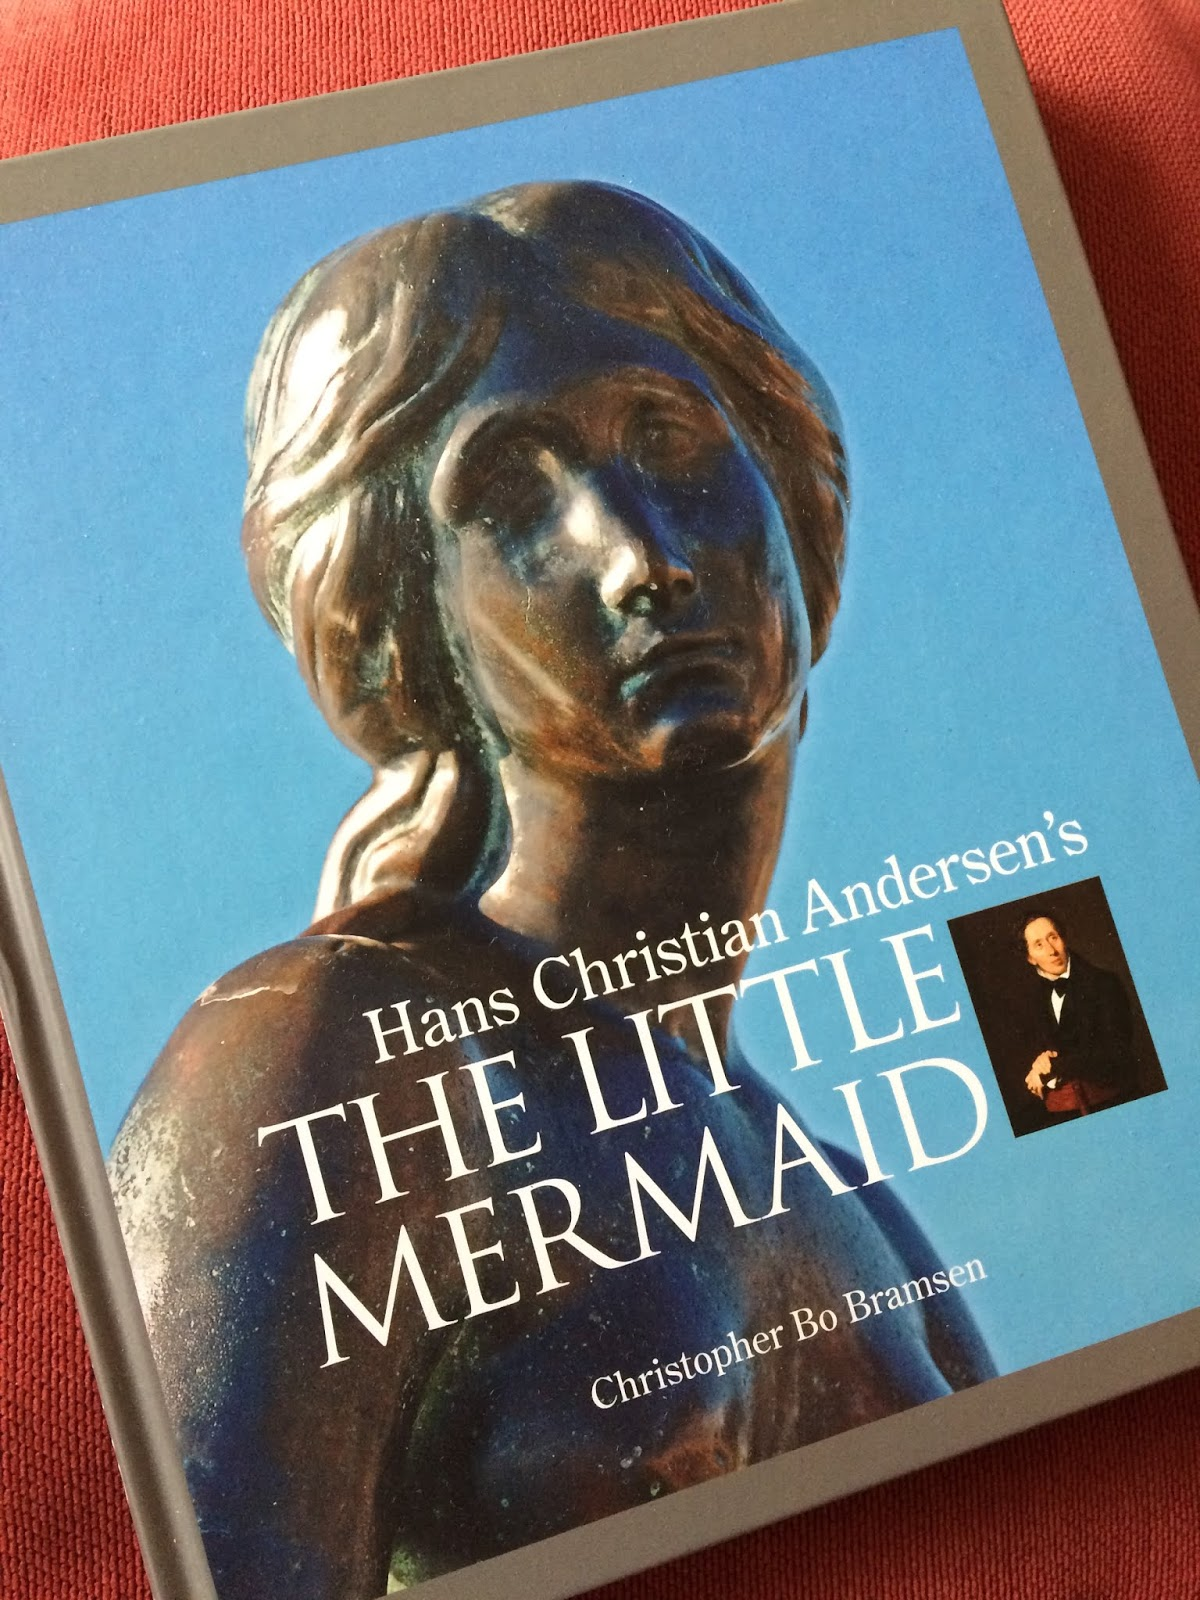 Hans Christian Andersen's The Little Mermaid by Christopher Bo Bramsen